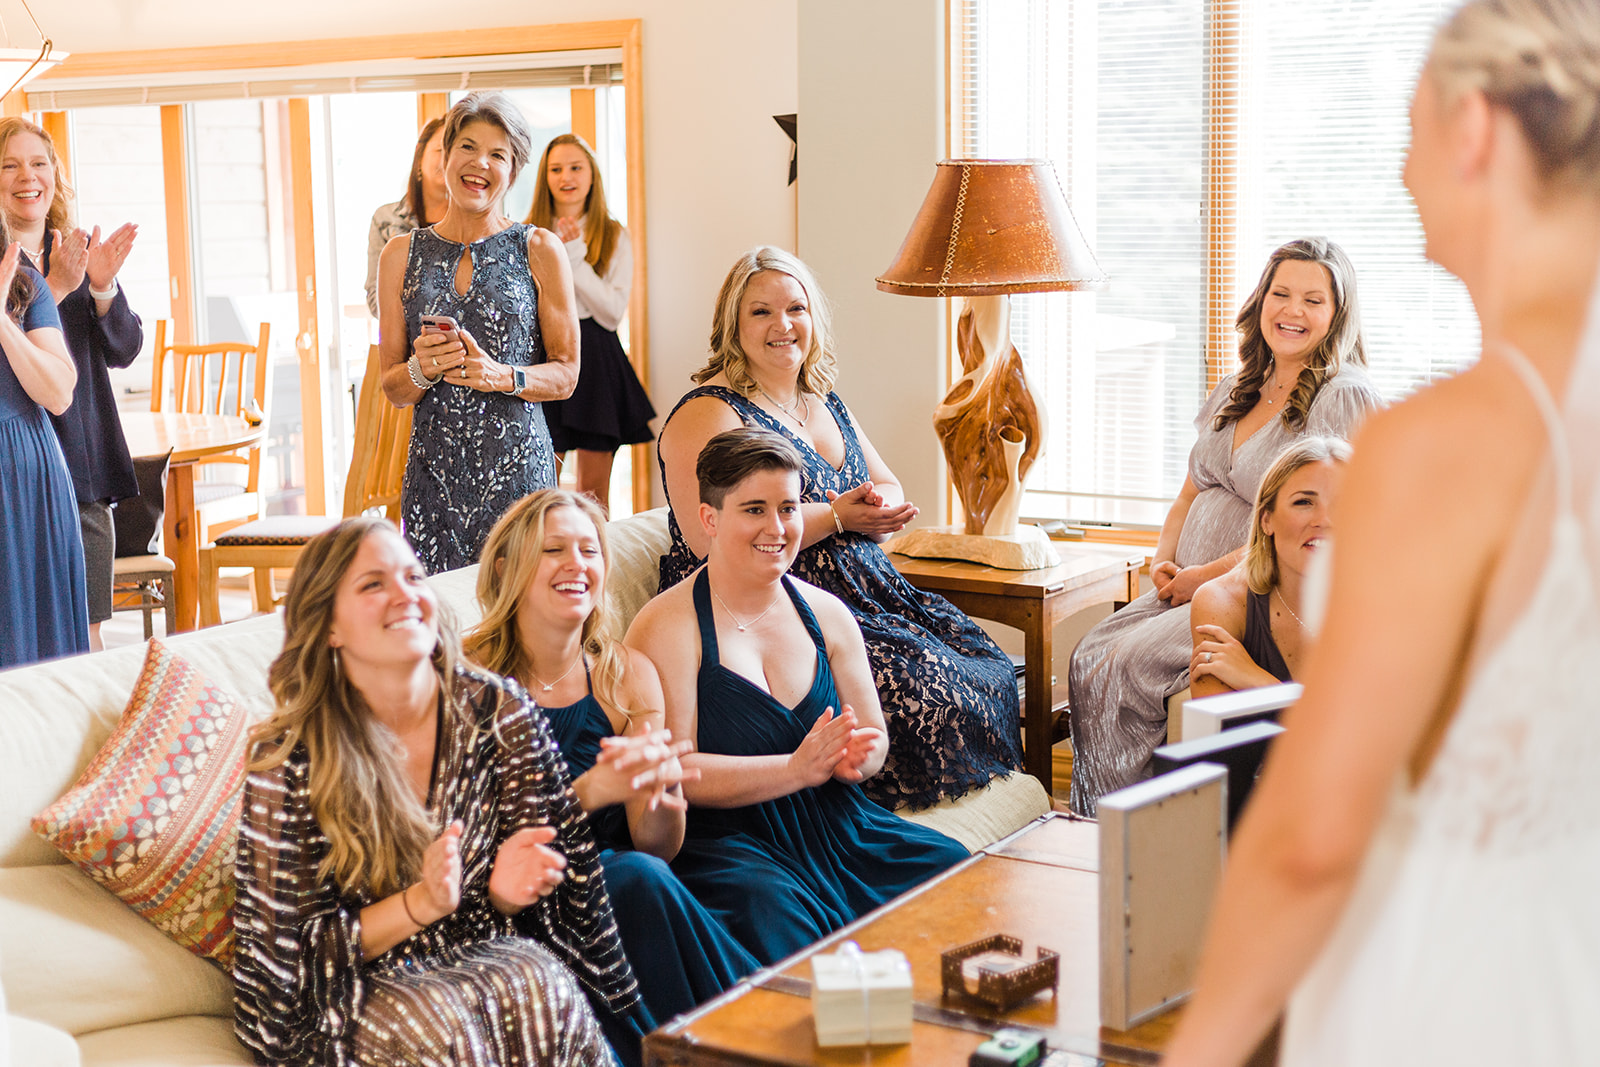 spokane bride first look with bridal party